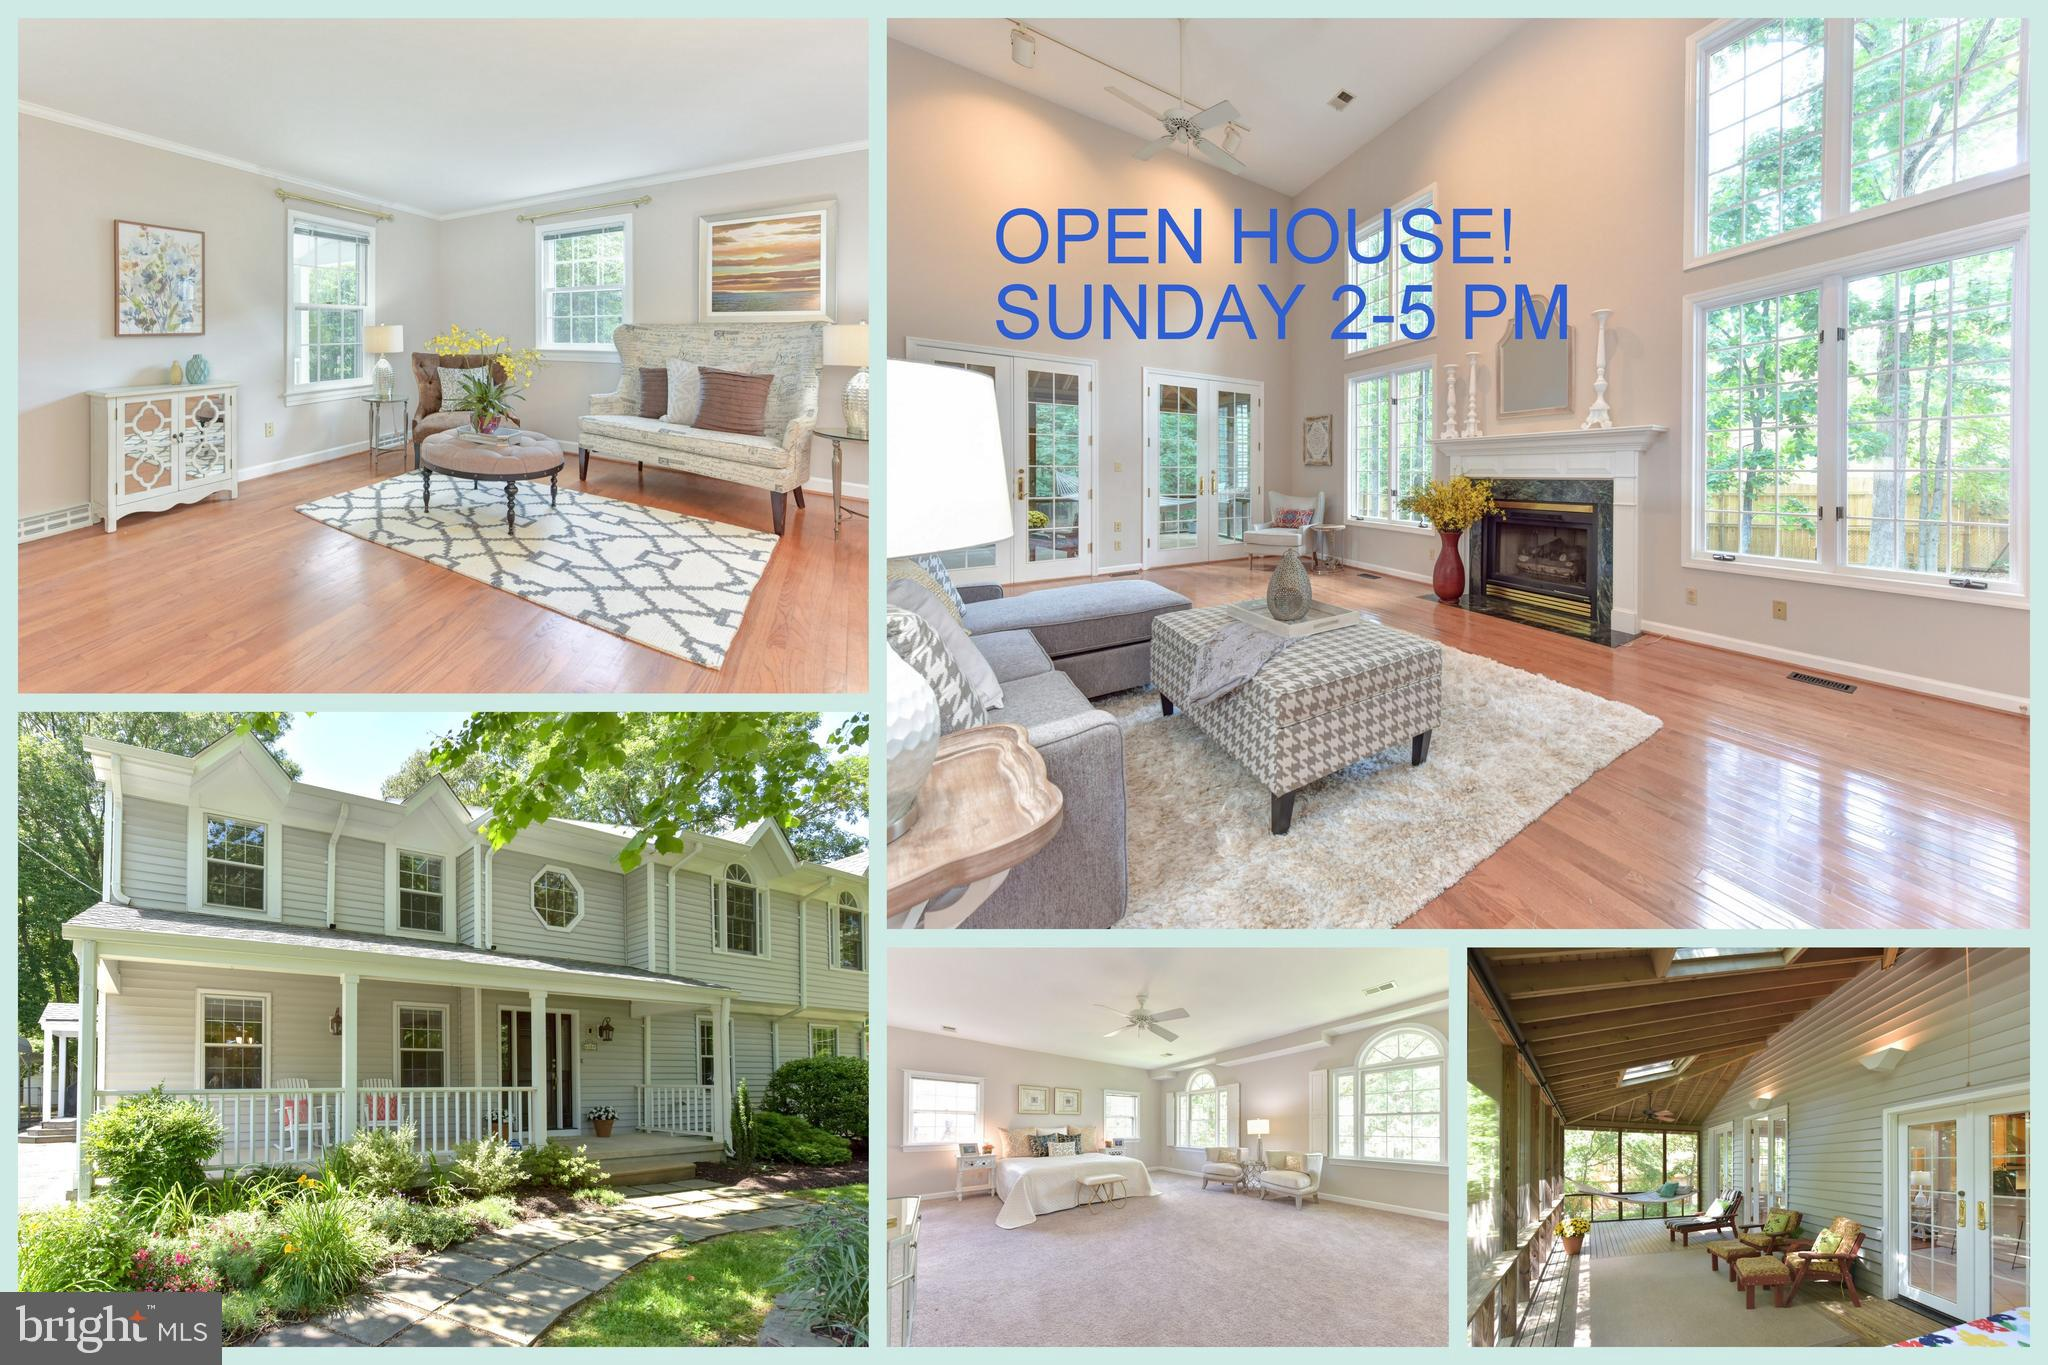 OPEN SUN 2-5! Meticulously maintained and expanded 5 BR, 3.5 BA colonial on a private 1/2 acre lot in a peaceful wooded neighborhood surrounded by mature trees. Wet basement? Not here! Enjoy 4,200 SF of living area all above grade! Open and spacious floor plan with 2 story foyer, gleaming hardwood flooring, recessed lighting, crown molding and abundant windows. Gourmet kitchen with granite countertops, abundant oak kitchen cabinets, tile flooring and stainless steel appliances including Sub-Zero refrigerator and Vulcan 6 burner range. Impressive 2 story family room with fireplace and French door access to screened patio. MAIN LEVEL BEDROOMS, full bath and dual-entry half bath. Oversized master suite with 9~ ceilings, Palladian windows and custom shutters. Fantastic 12x32 screened porch with skylights offering panoramic views of the backyard. Whole house generator. Covered parking. Great location - minutes to Franconia-Springfield Metro, Kingstowne shopping, Springfield Town Center and major routes - I-95, I-395, I-495.